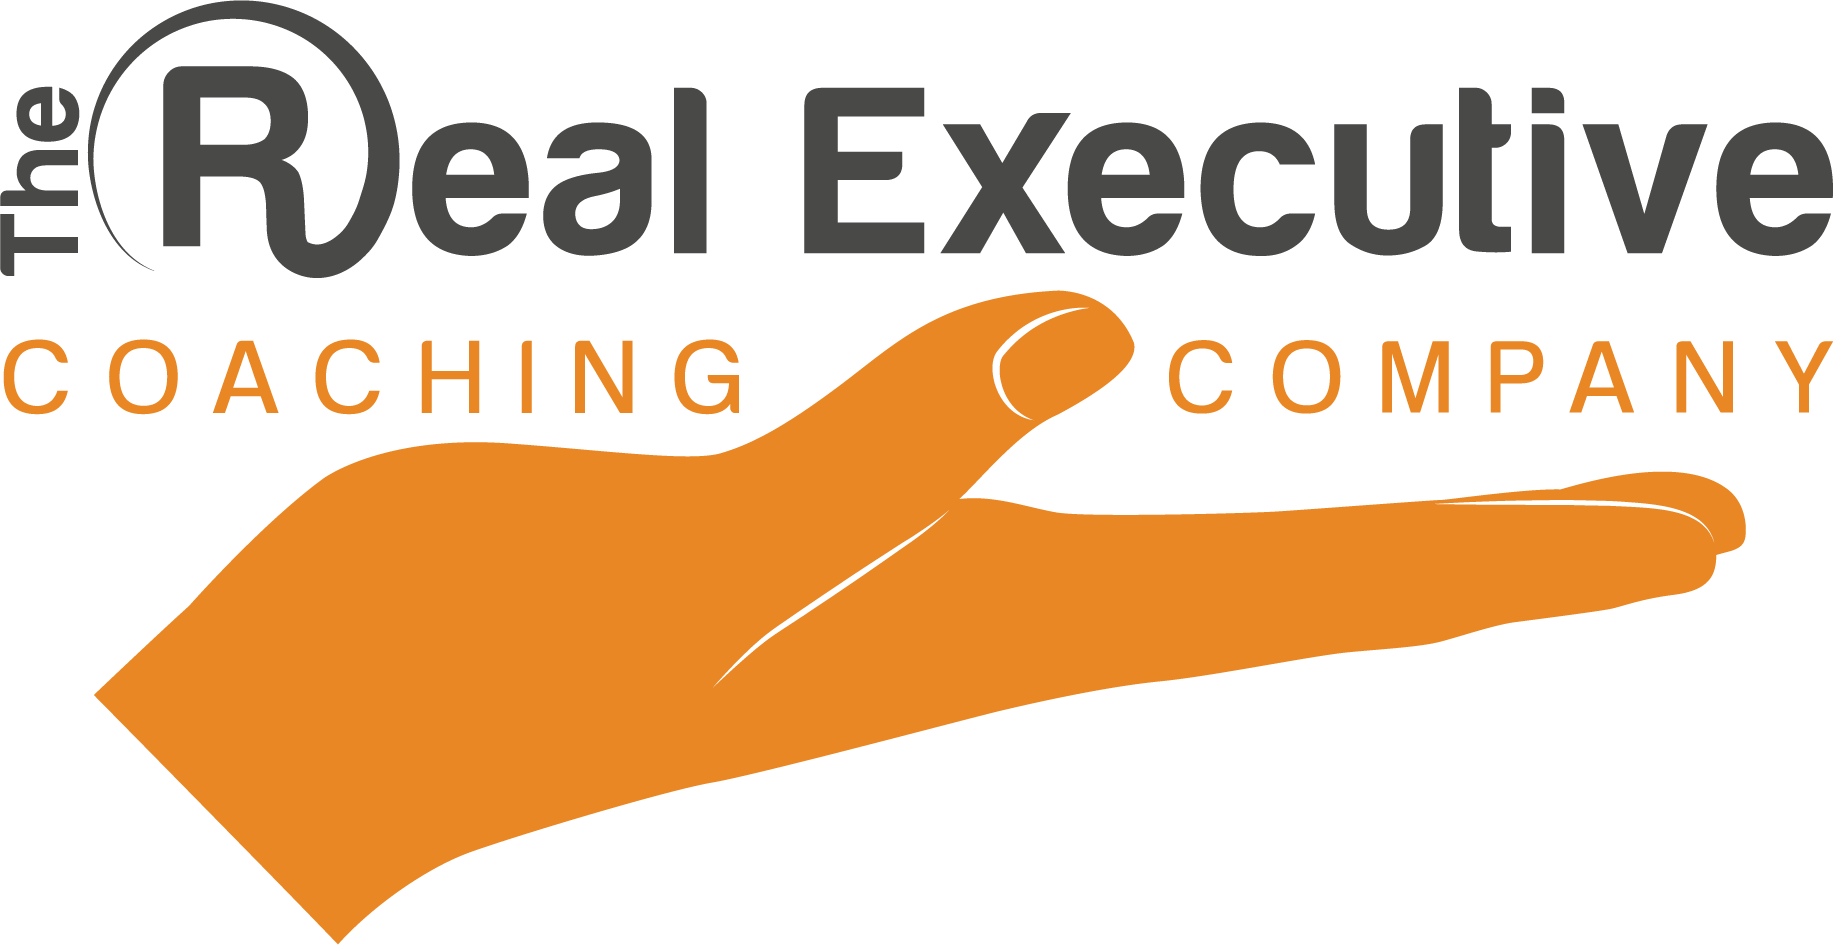 The Real Executive Coaching Company